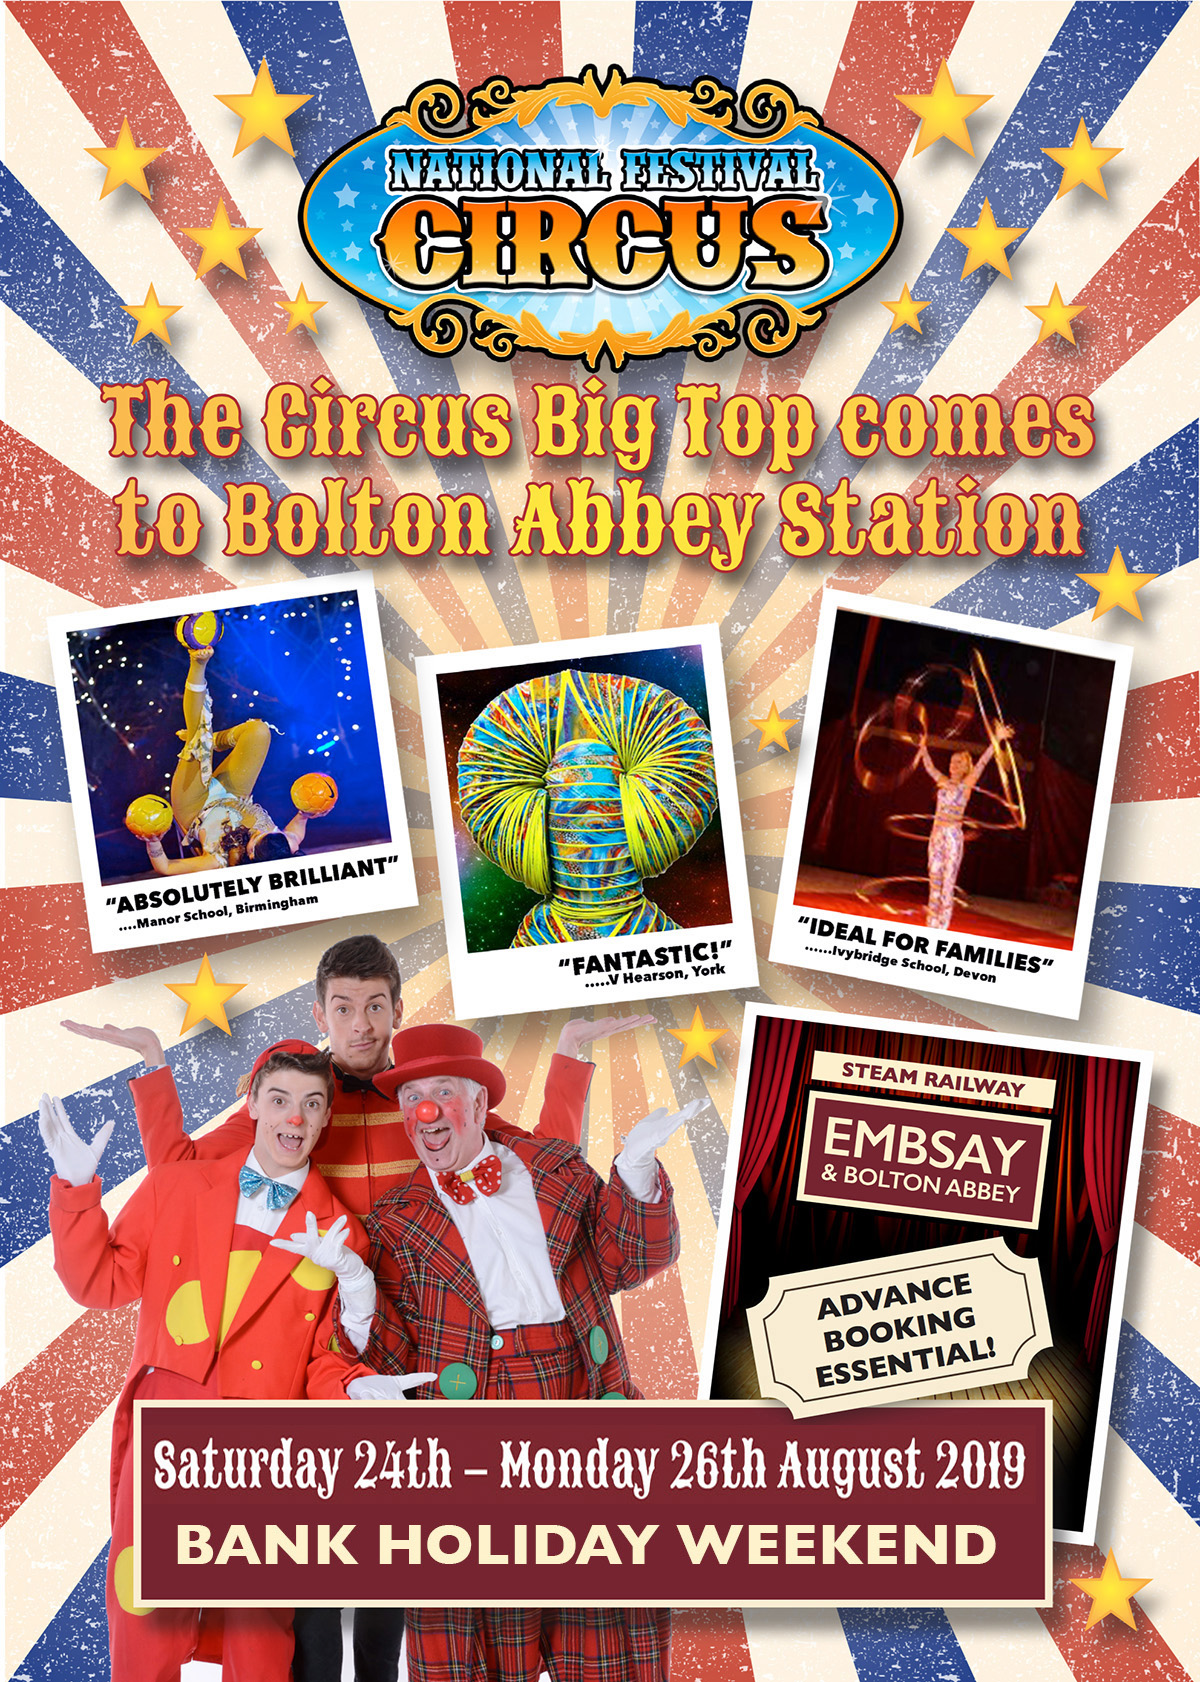 National Festival Circus Comes To Bolton Abbey!